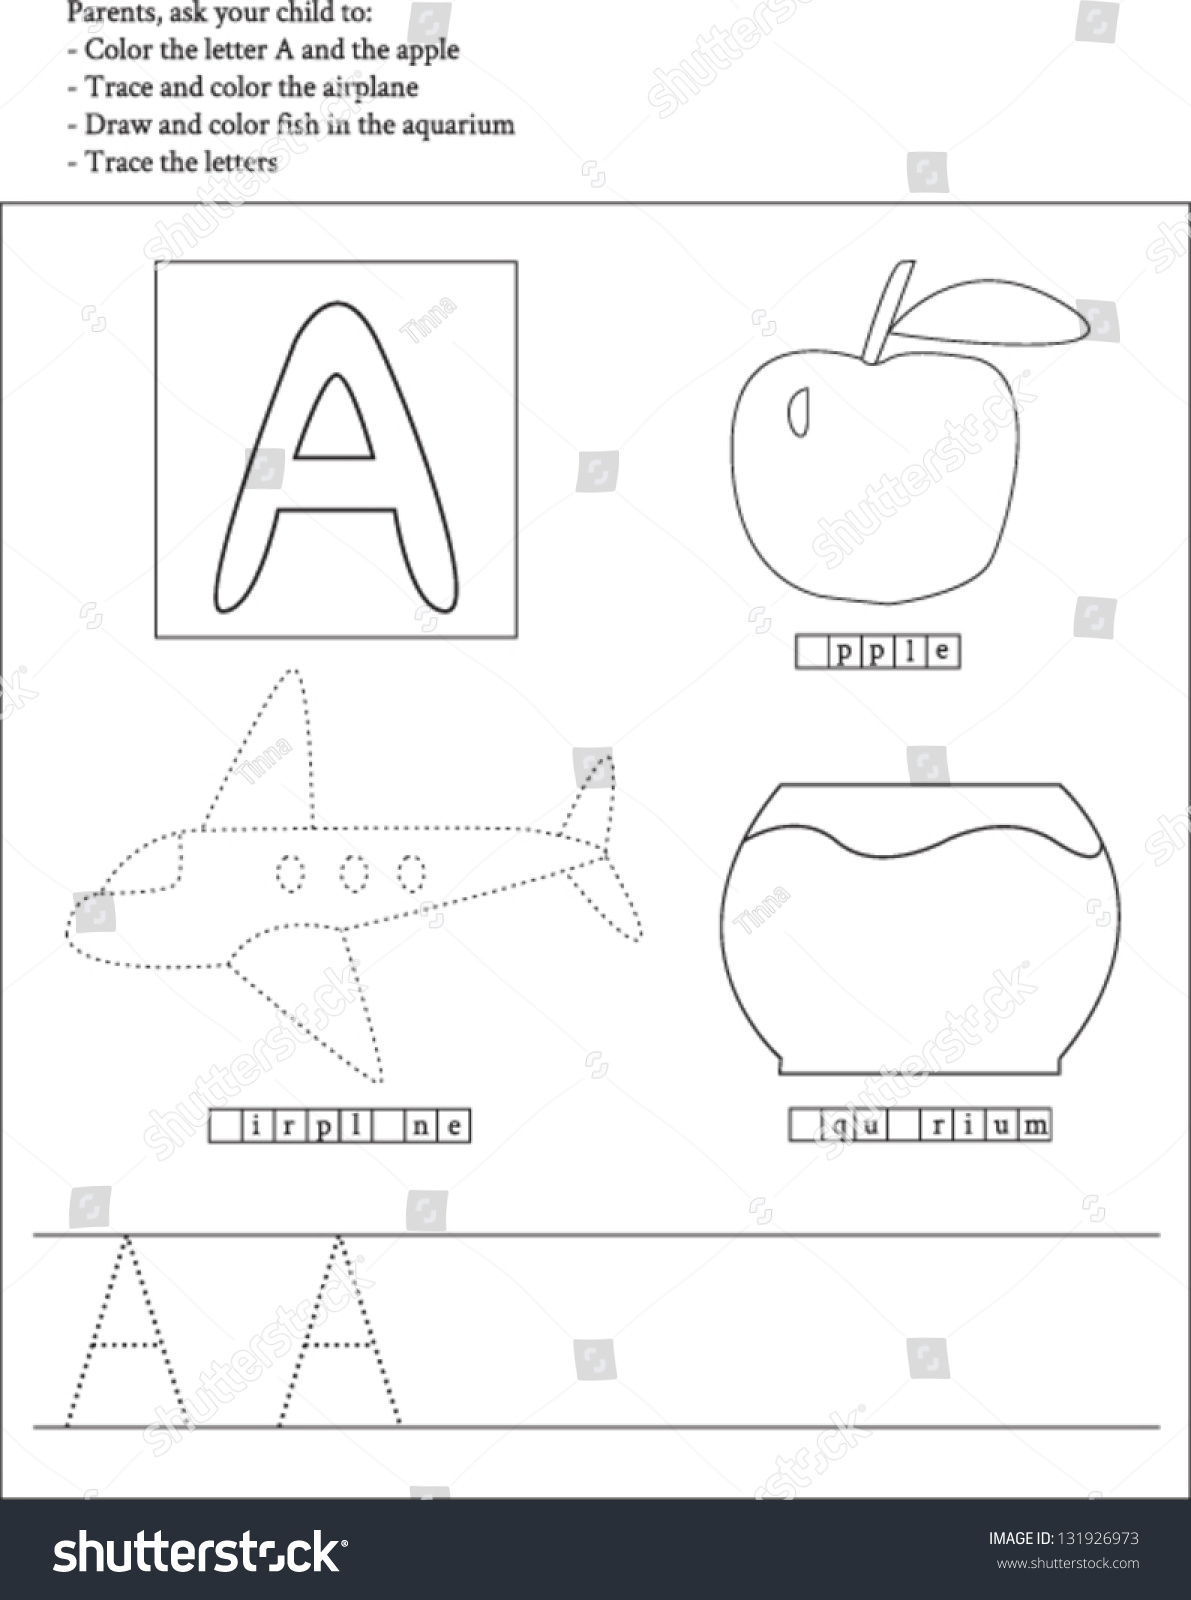 Trace Color Letter A Worksheet Preschoolers Vector 131926973 – A Worksheet